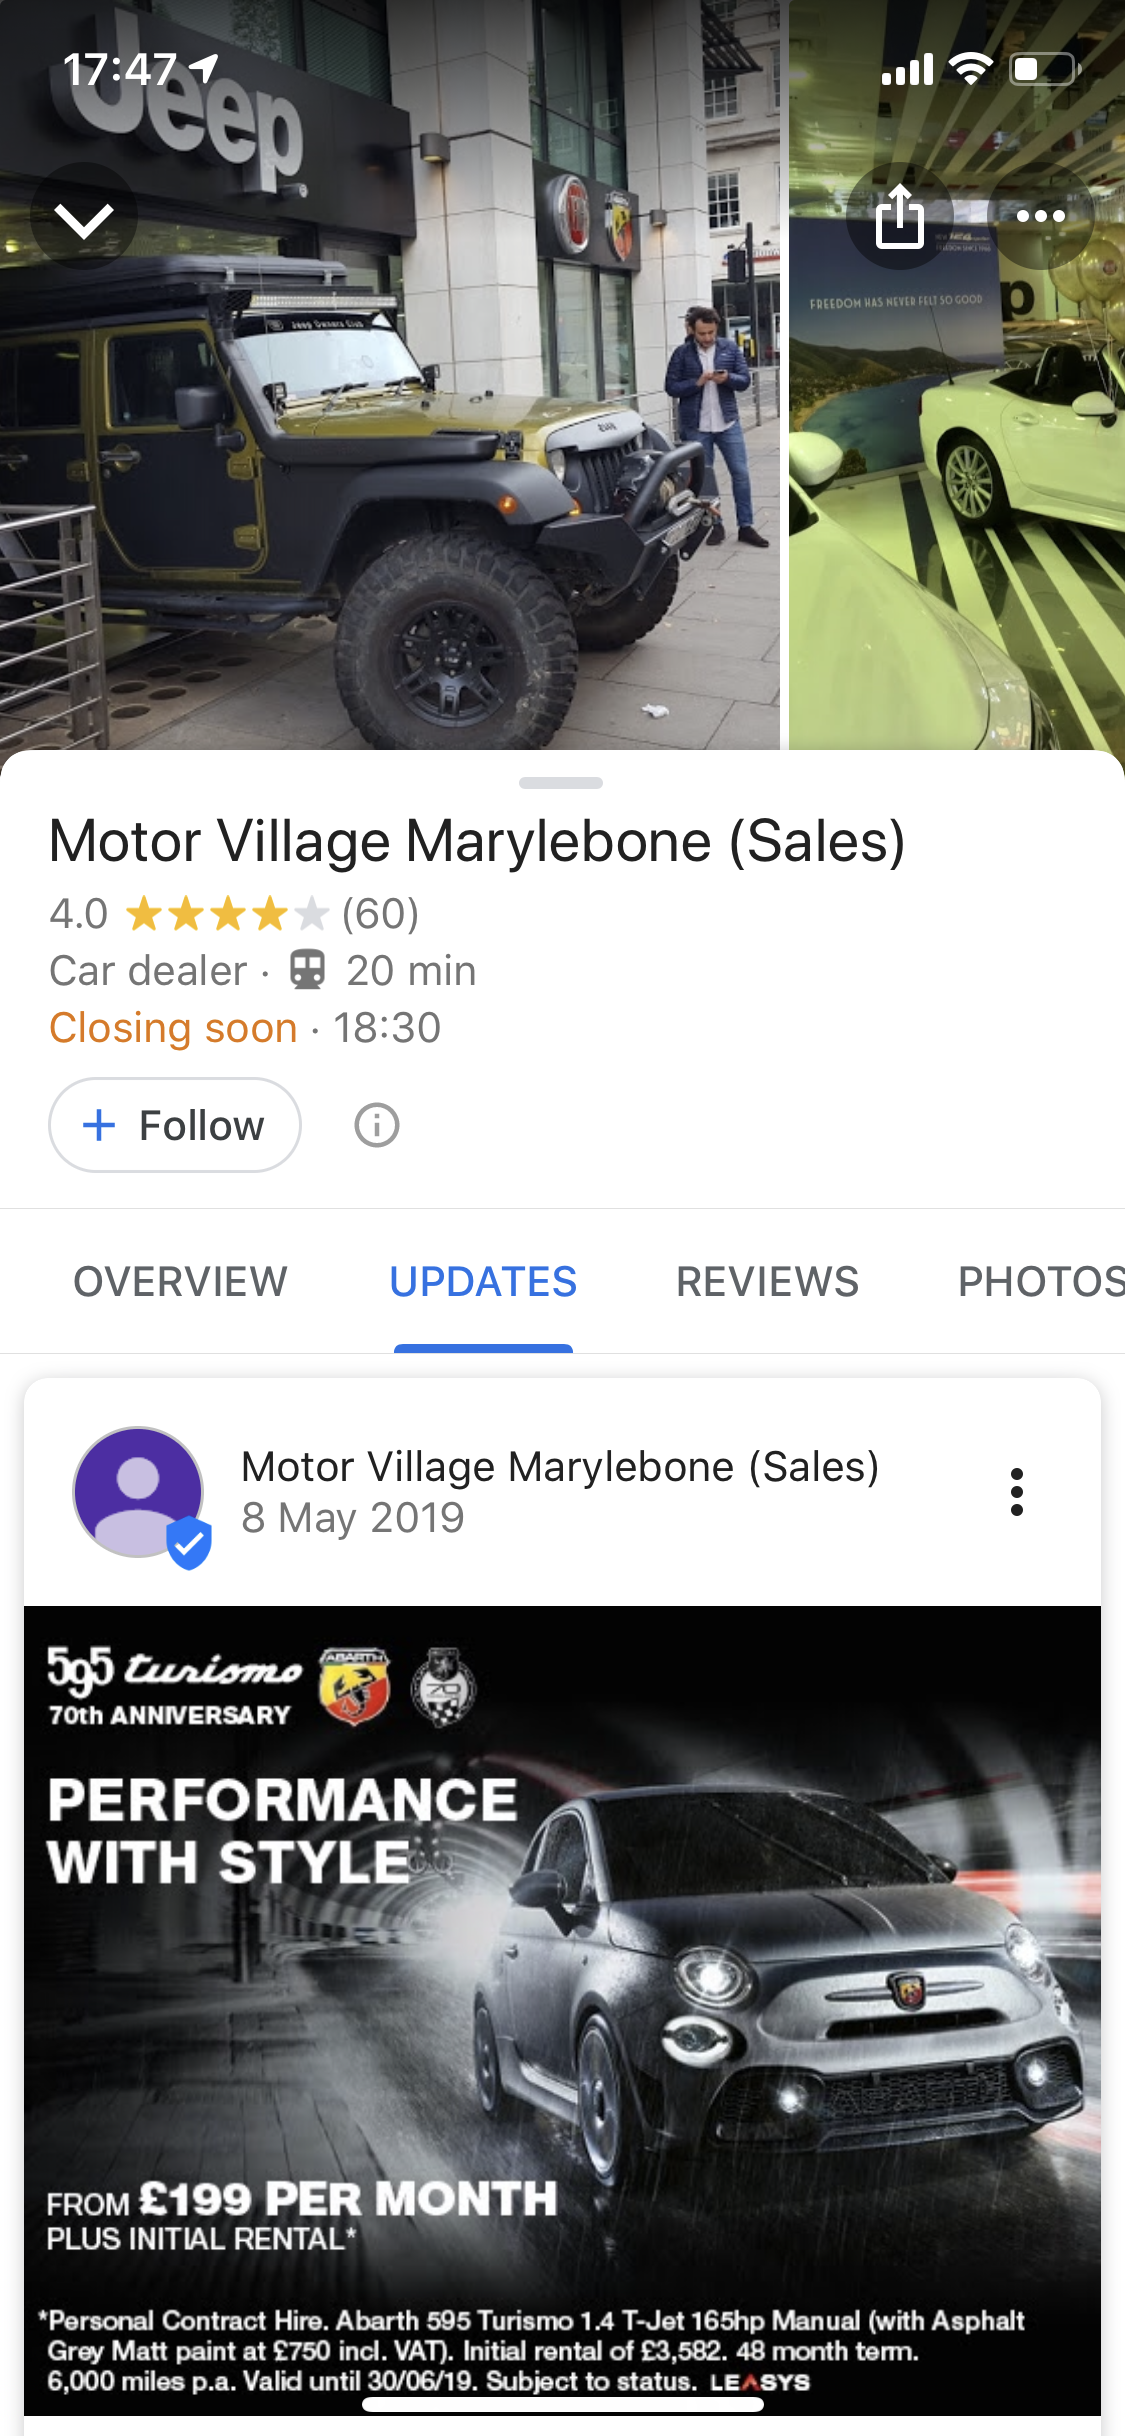 Google My Business posts appear under the Updates section in Google Maps.